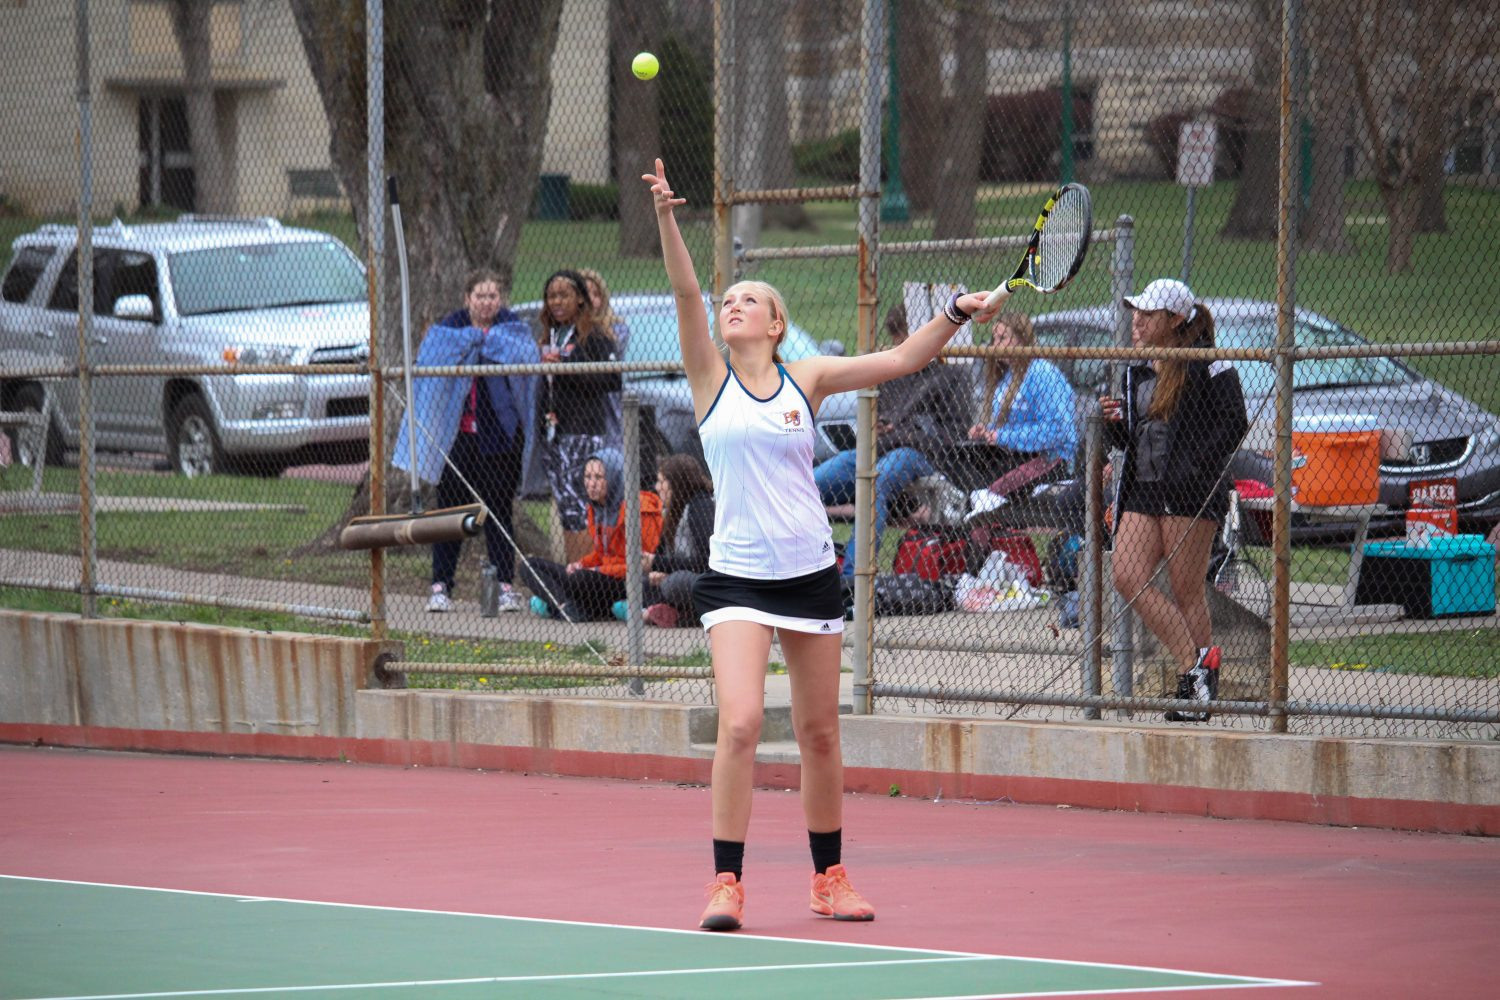 Morgan+Francis+serves+in+Baker%27s+match+against+Ottawa+on+March+28.+Photo+by+Alex+Fortuna.